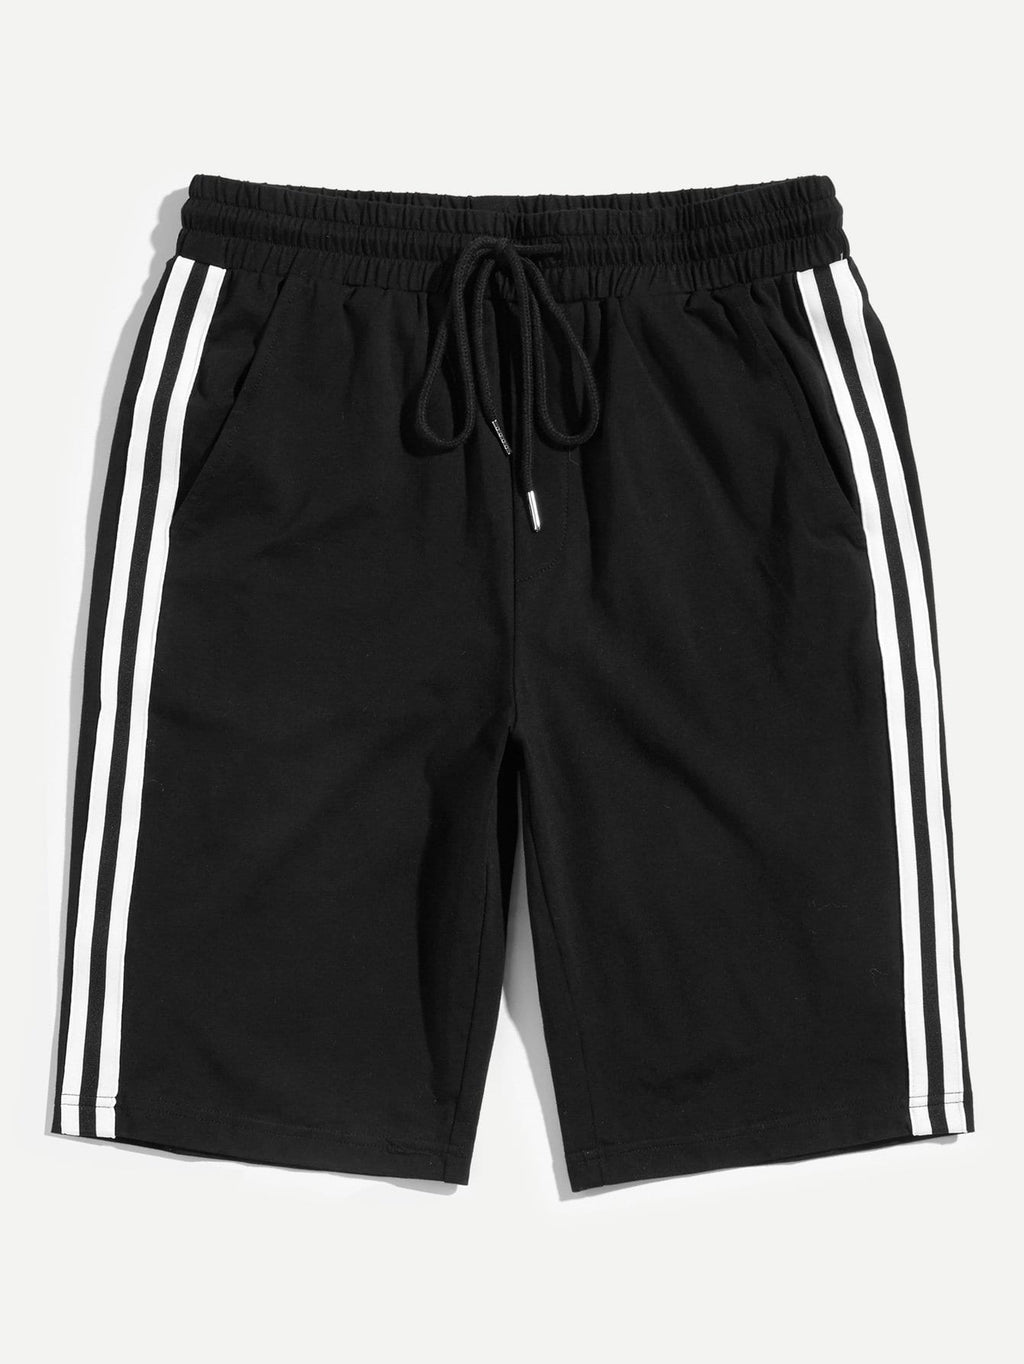 Men's Shorts - Drawstring Waist Striped Shorts